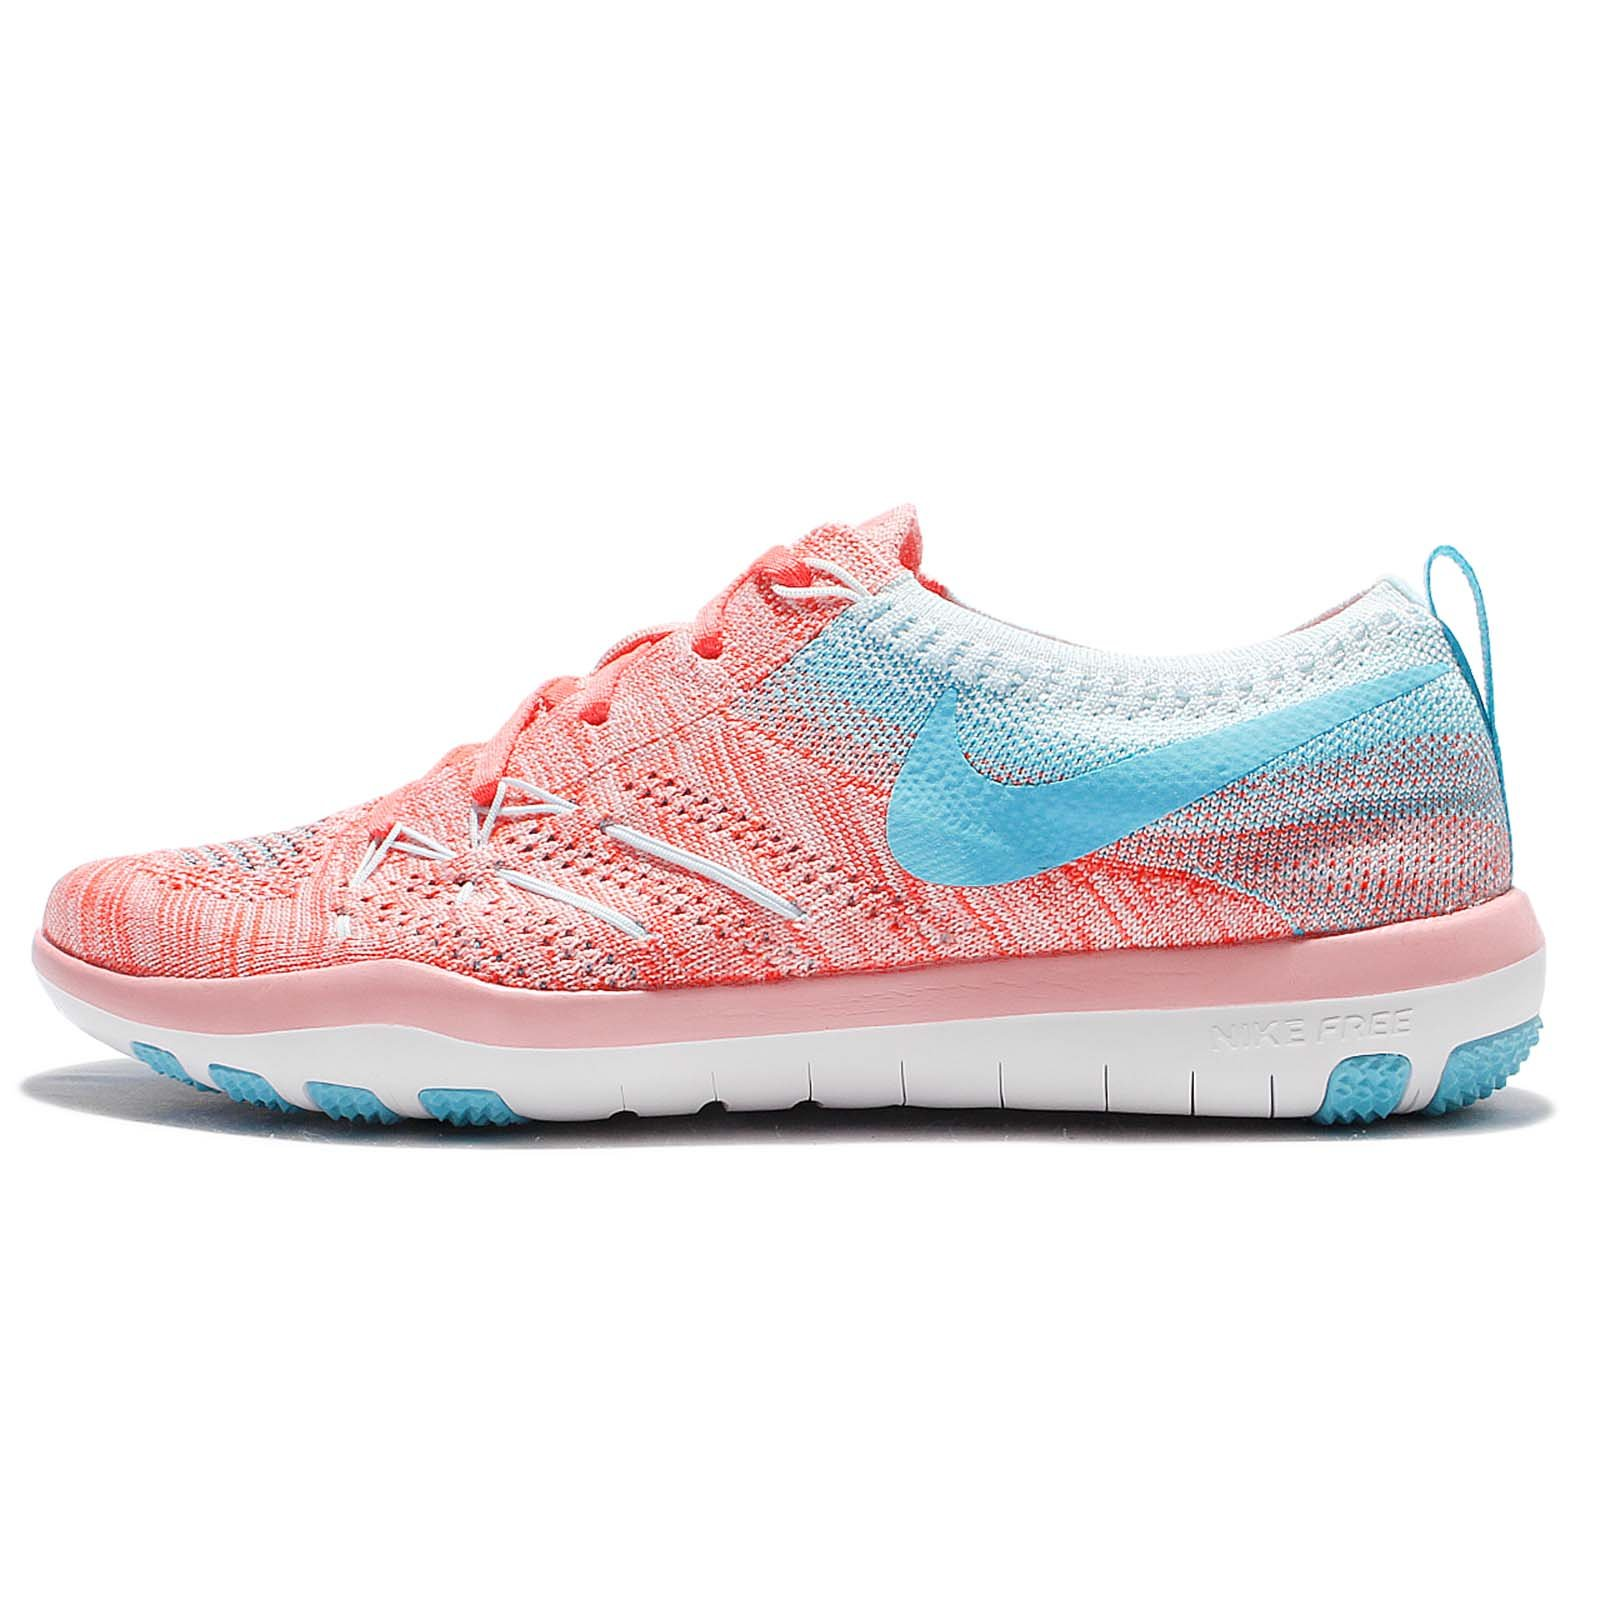 9f6618551727 Galleon - Nike Womens Free TR Focus Flyknit Running Trainers 844817 Sneakers  Shoes (US 6